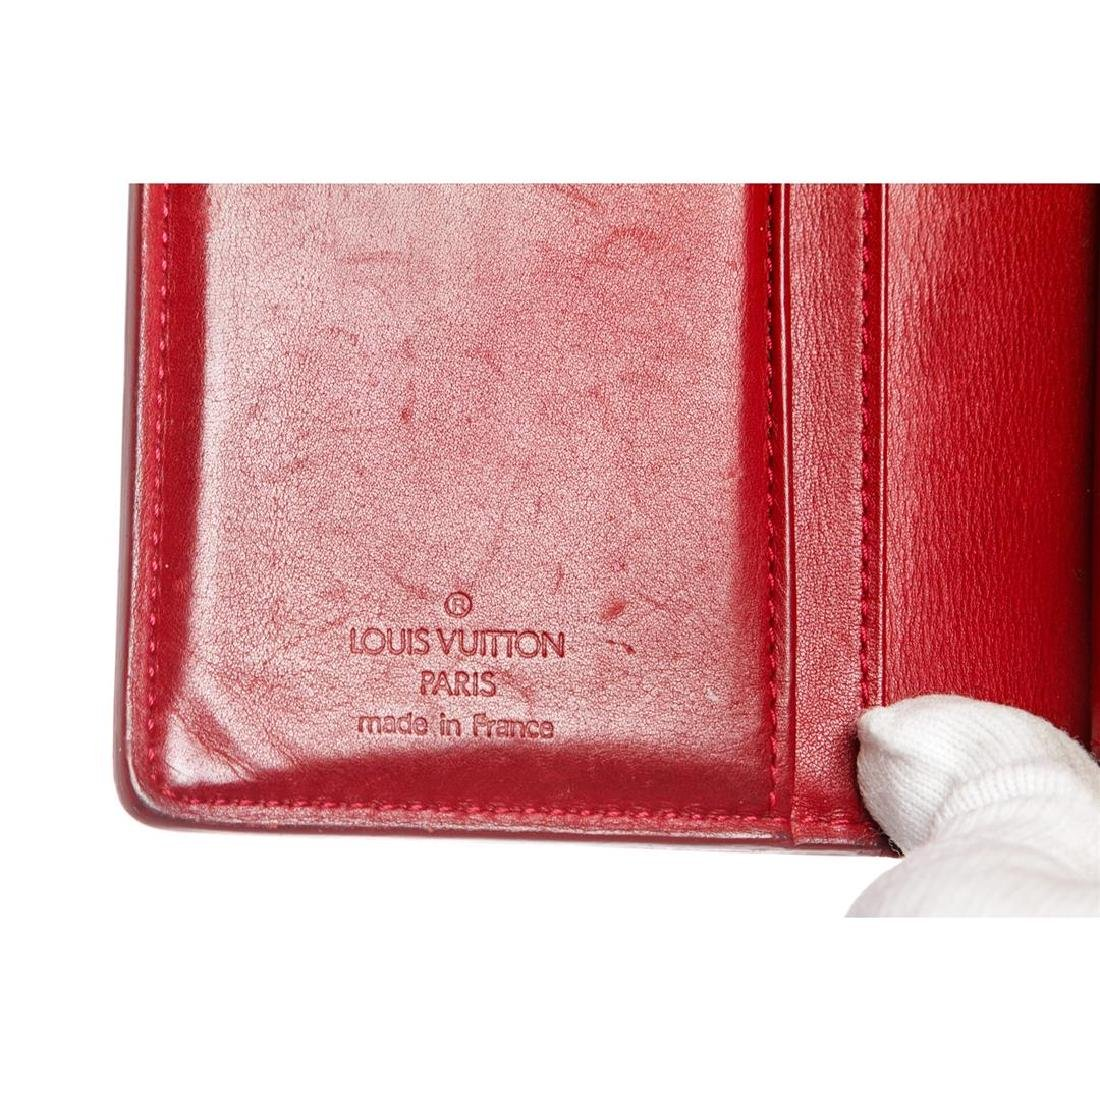 Louis Vuitton Red Vernis Monogram French Wallet - 7